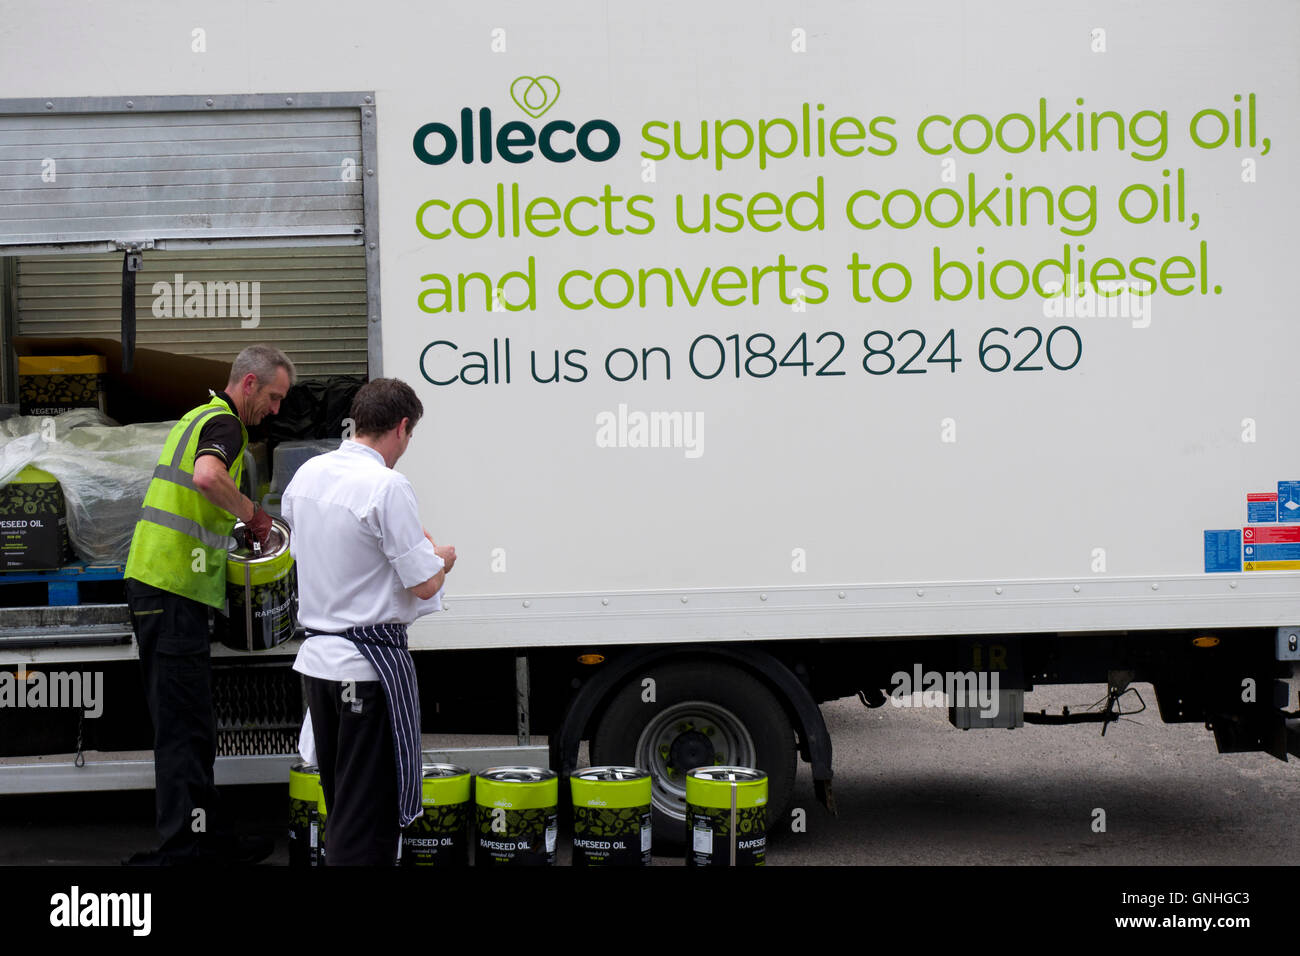 delivery of drums of rapeseed oil for restaurant kitchen by olleco van who also collect used oil for biofuel conversion - Stock Image